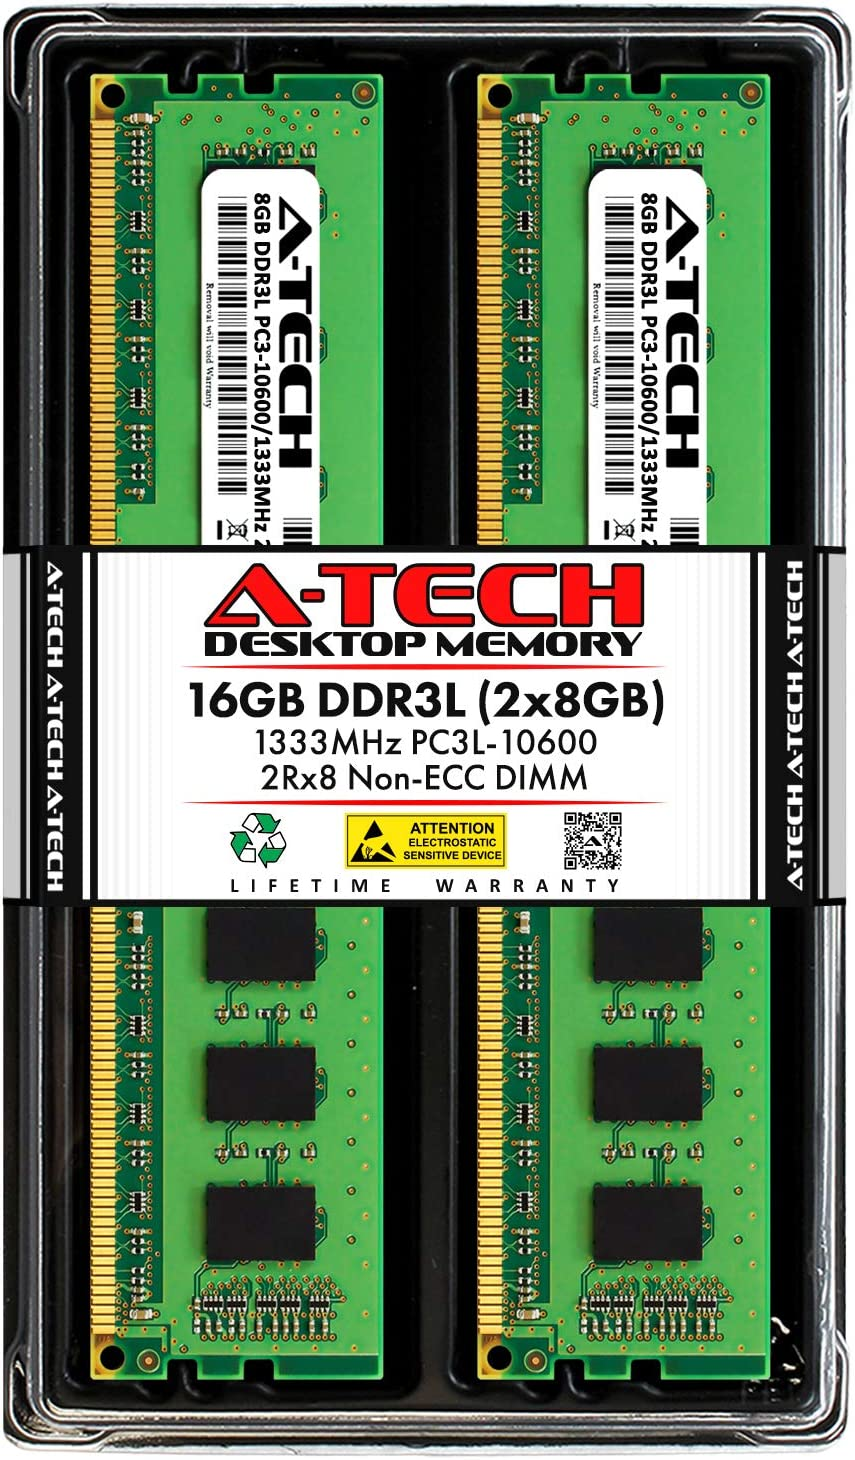 A-Tech 16GB DDR3 / DDR3L 1333MHz Desktop Memory Kit (2 x 8GB) PC3-10600 Non-ECC Unbuffered DIMM 240-Pin 2Rx8 1.35V Low Voltage Dual Rank Computer RAM Upgrade Sticks